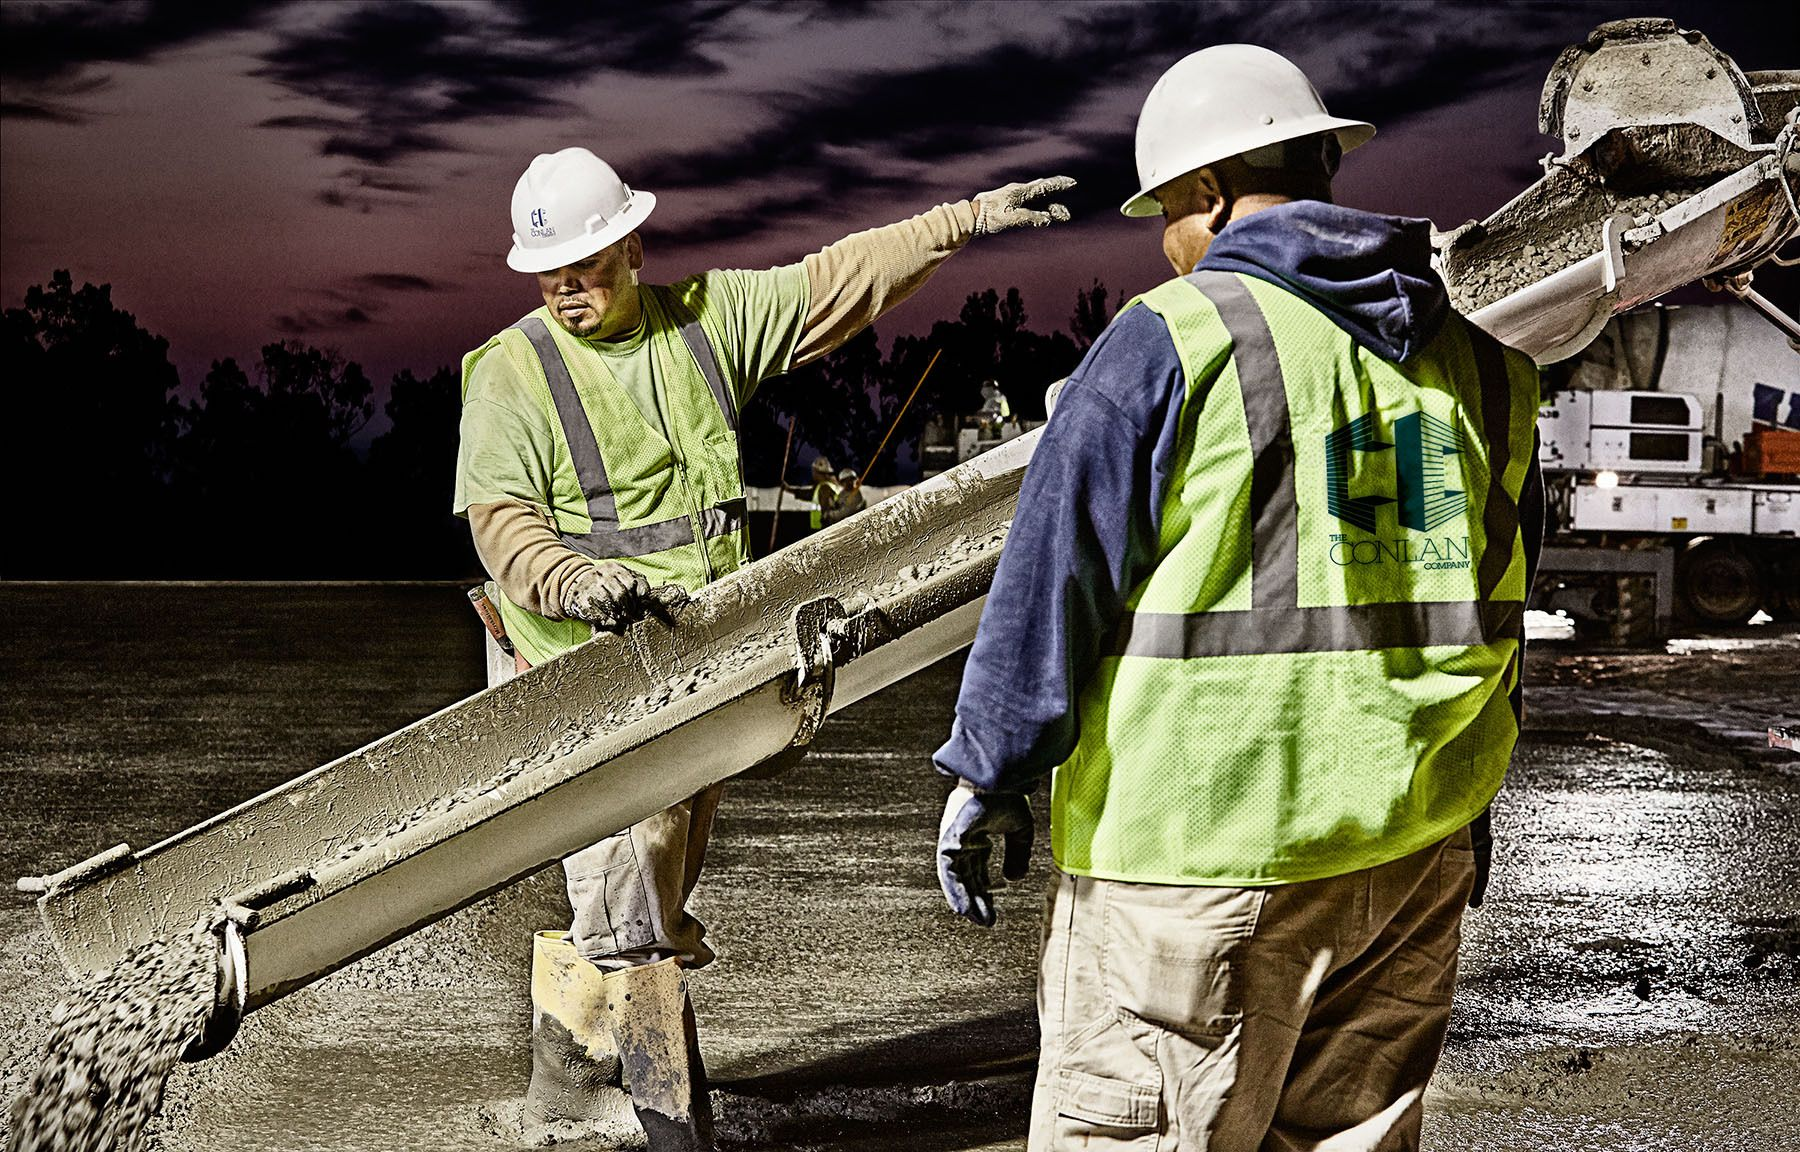 1people_working_man_construction_concrete_hardhat_location_outdoors